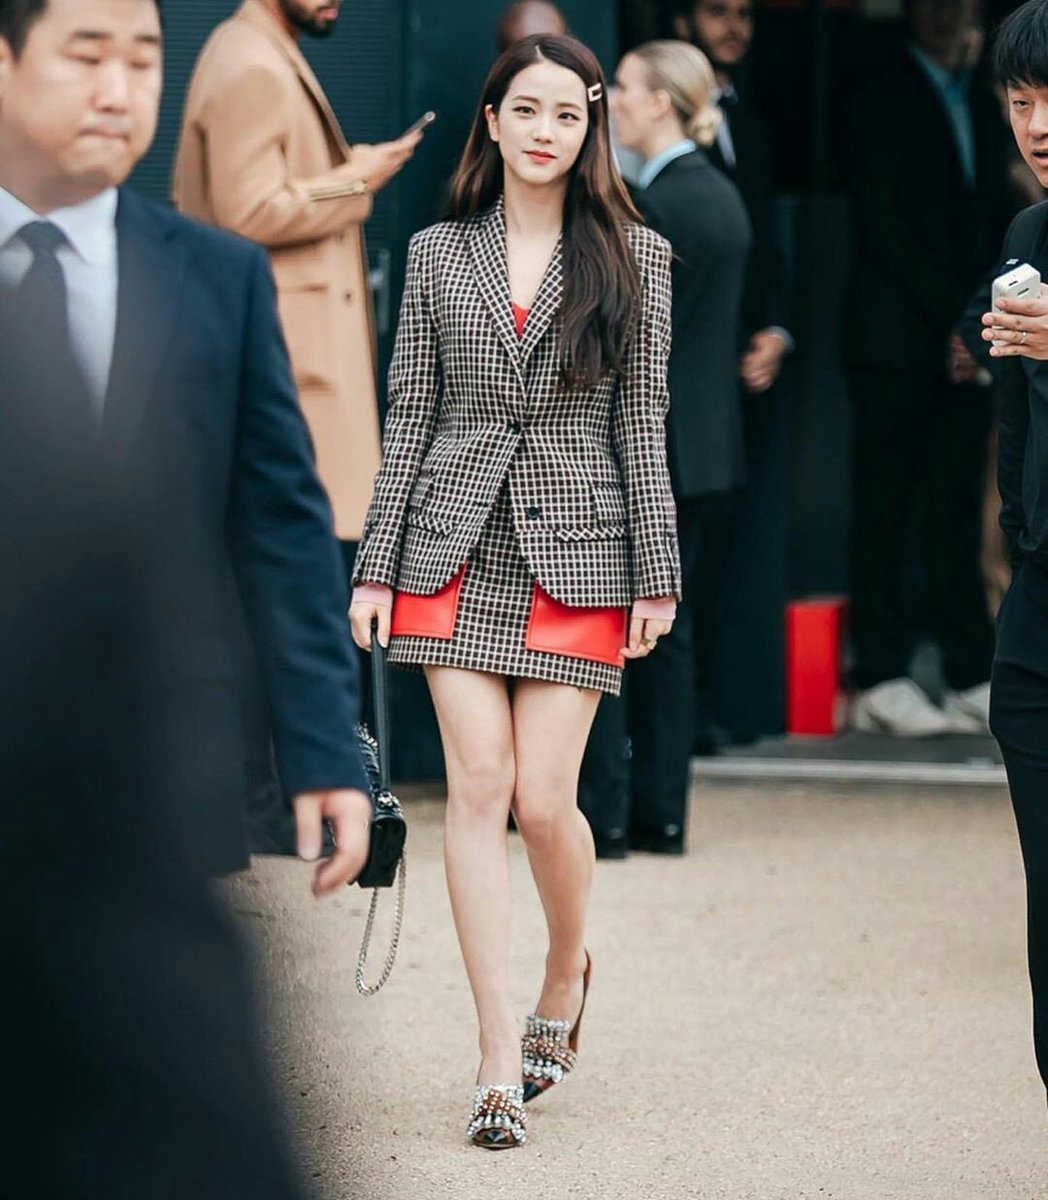 JISOO @ LONDON FASHION WEEK - BURBERRY SHOW 190916